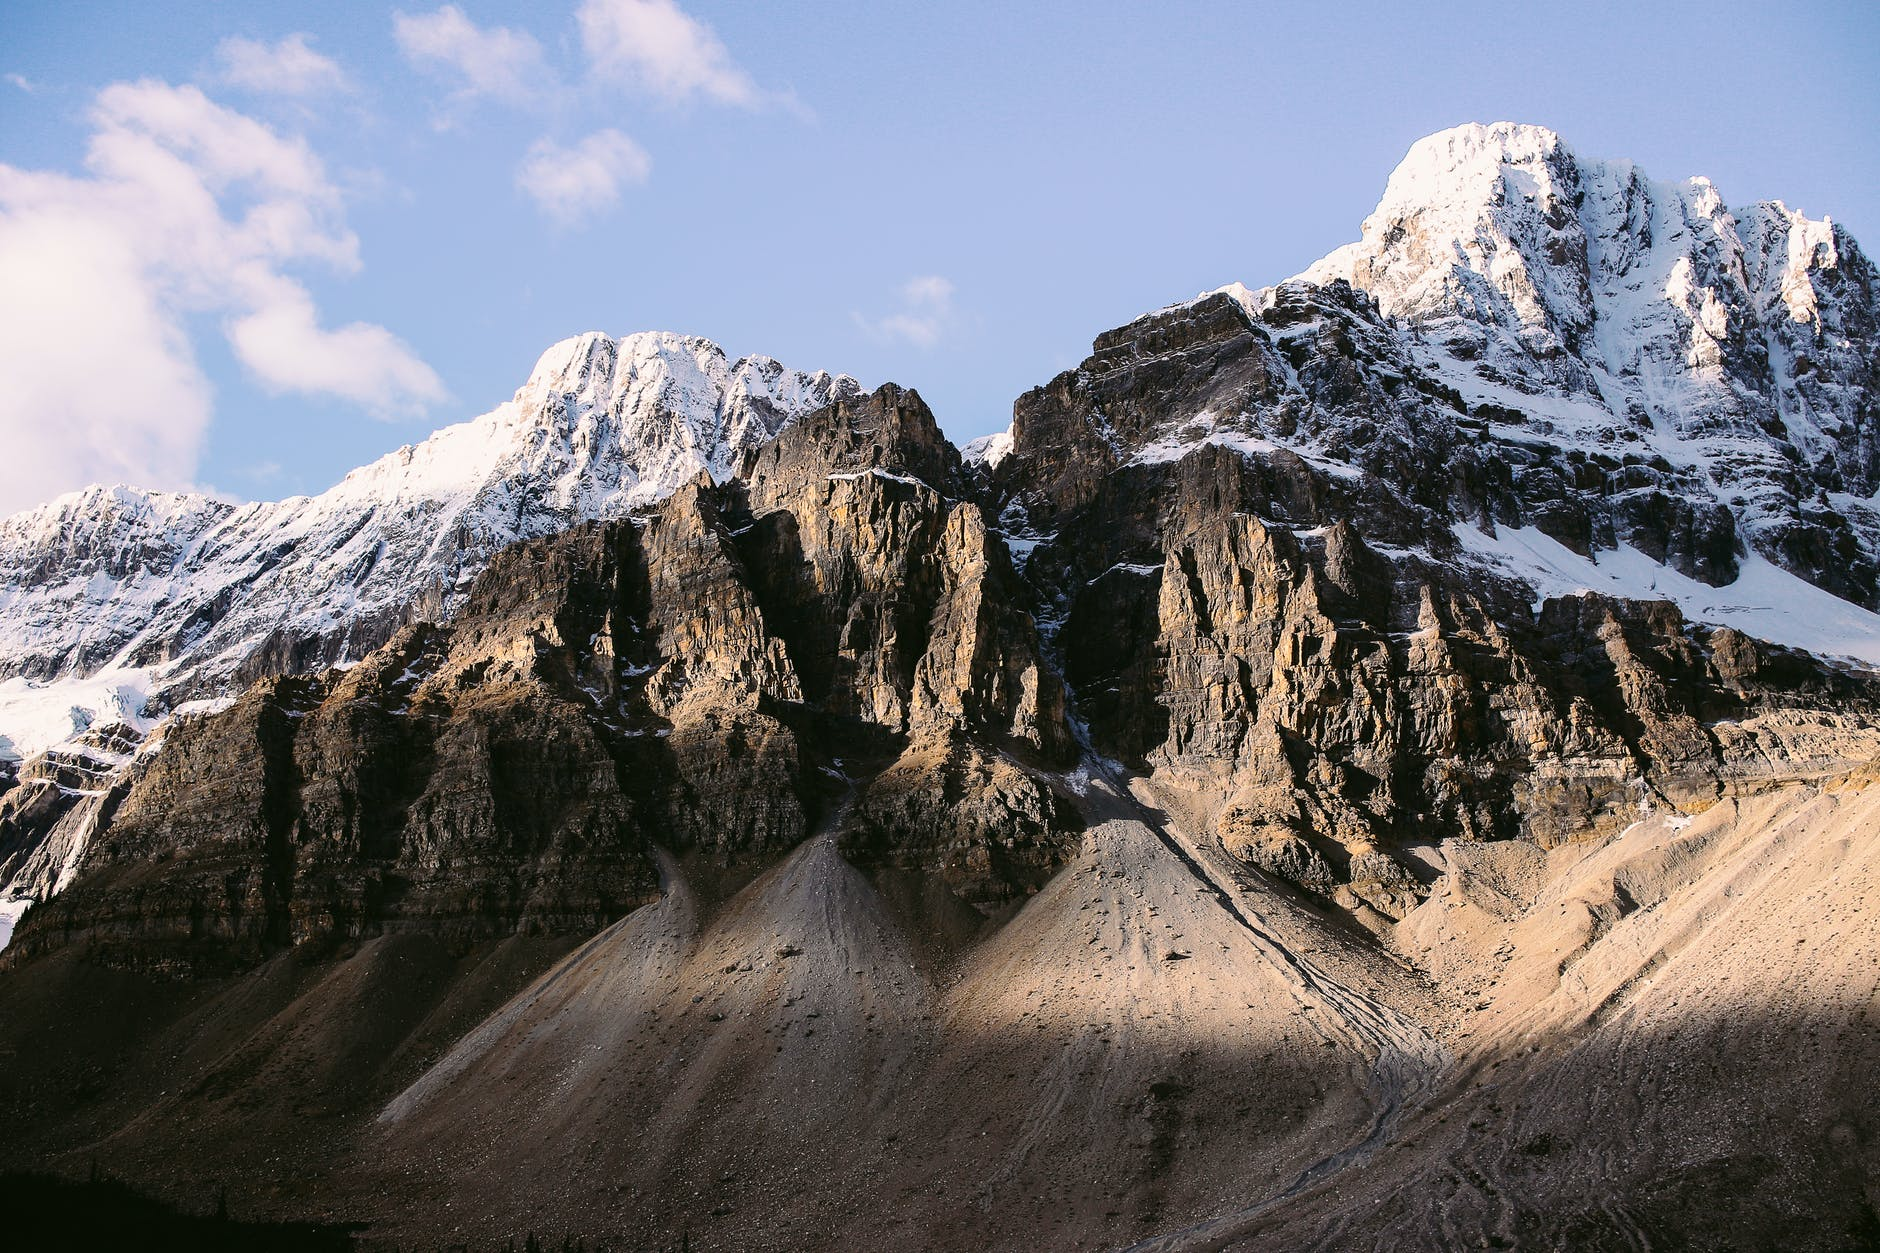 snowy mountain peaks in nature